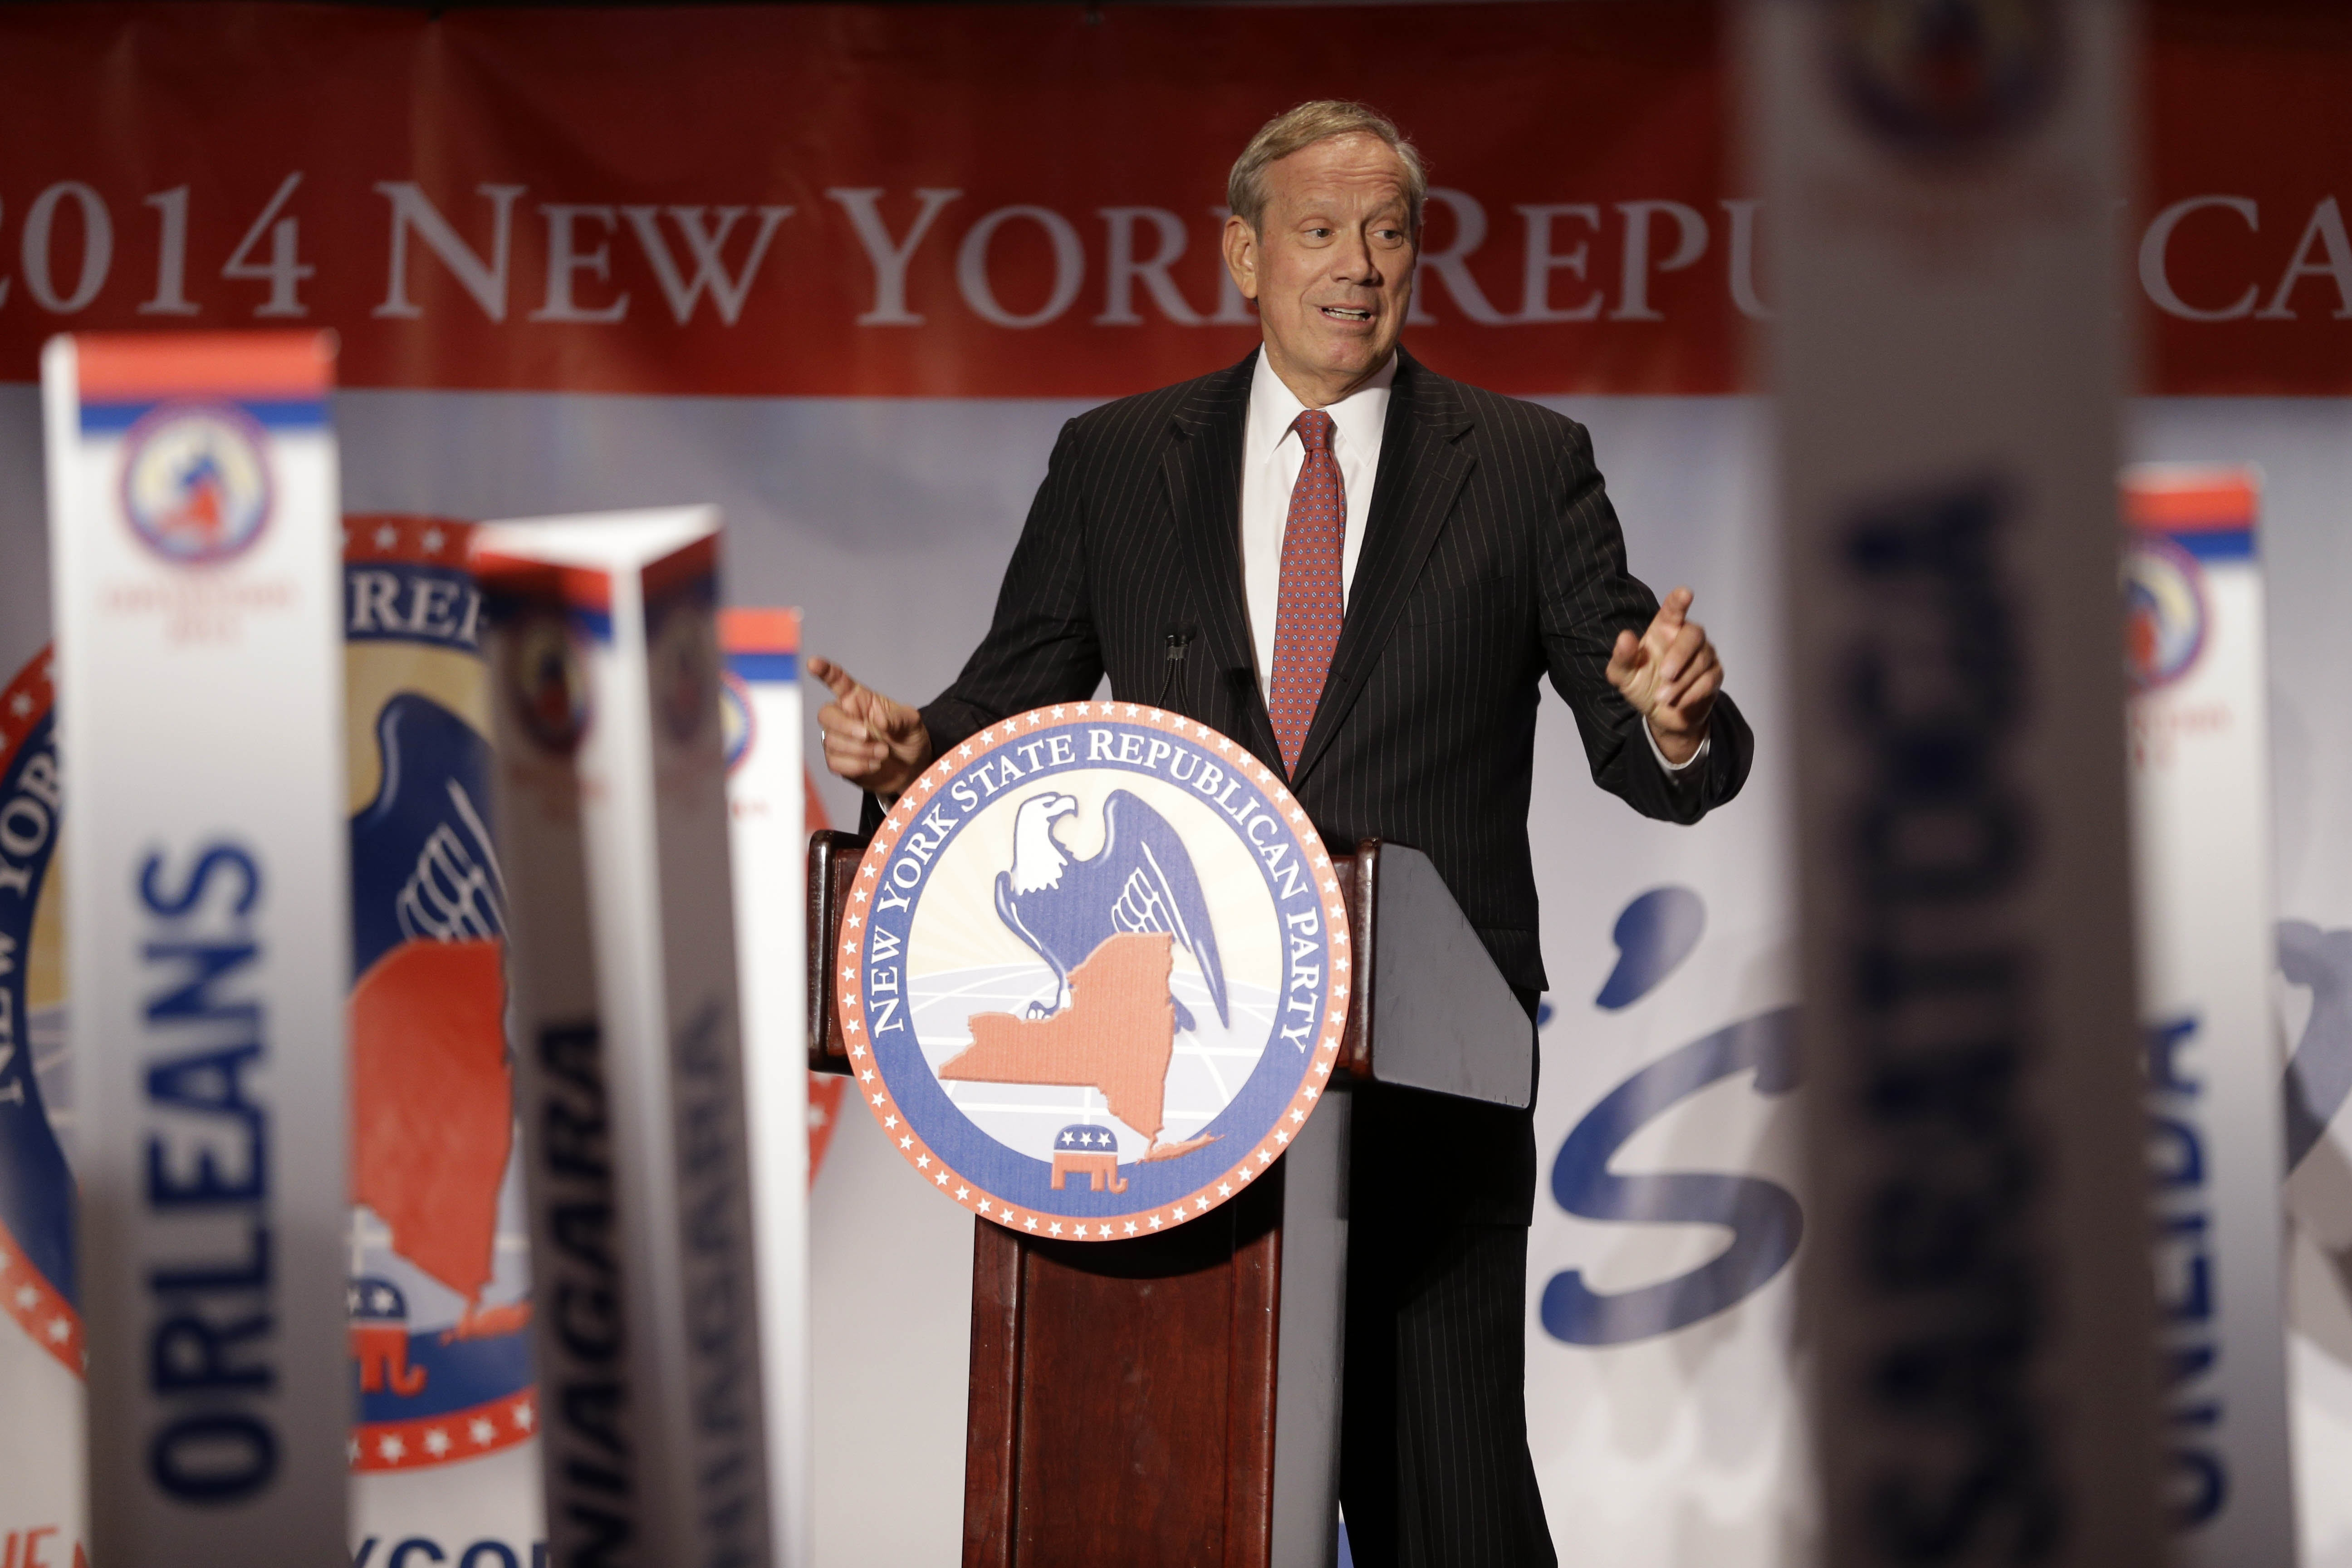 Former three-term Gov. George Pataki speaks during GOP State Convention in Rye Brook, citing the need for Republicans to appeal across party lines so they can make Albany work.